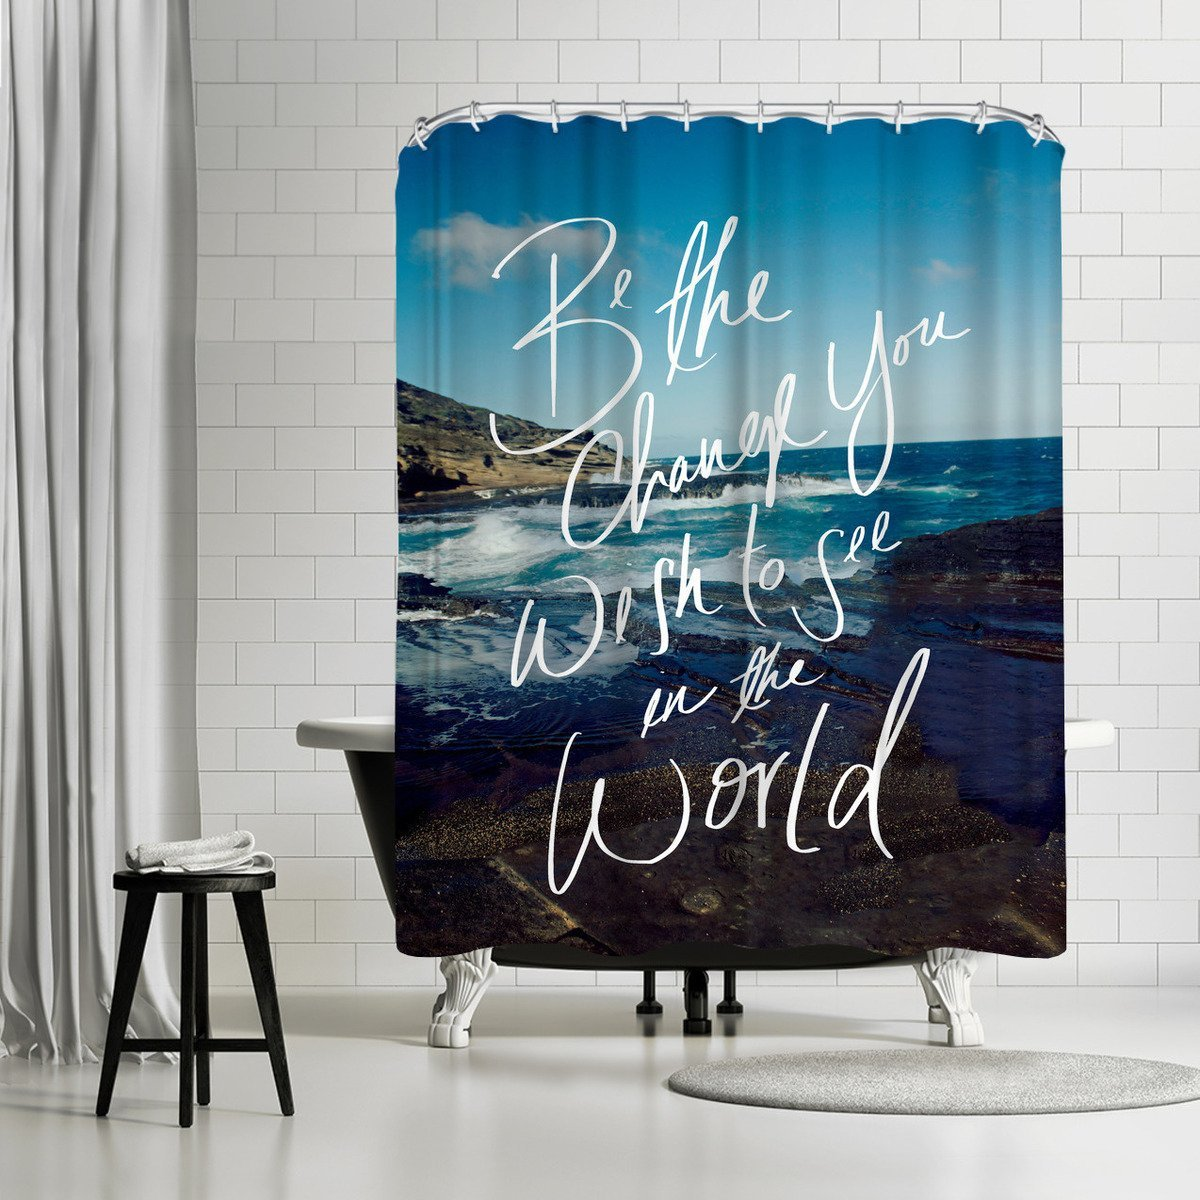 Be The Change by Leah Flores Shower Curtain - Shower Curtain - Americanflat